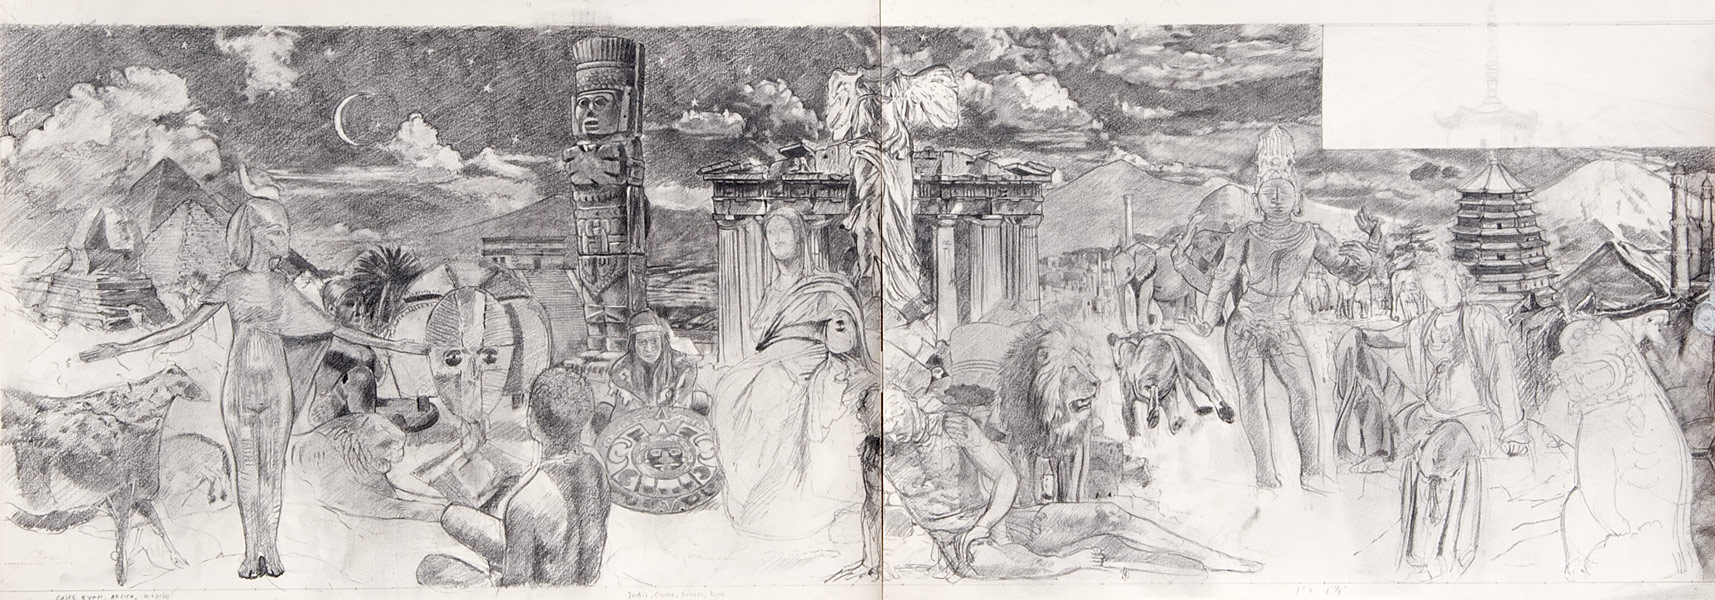 "Detail of Wilson Middle School Mural Drawing; 1st half (pencil on bristol, 19"" x 50"", 1993) Manny Cosentino"